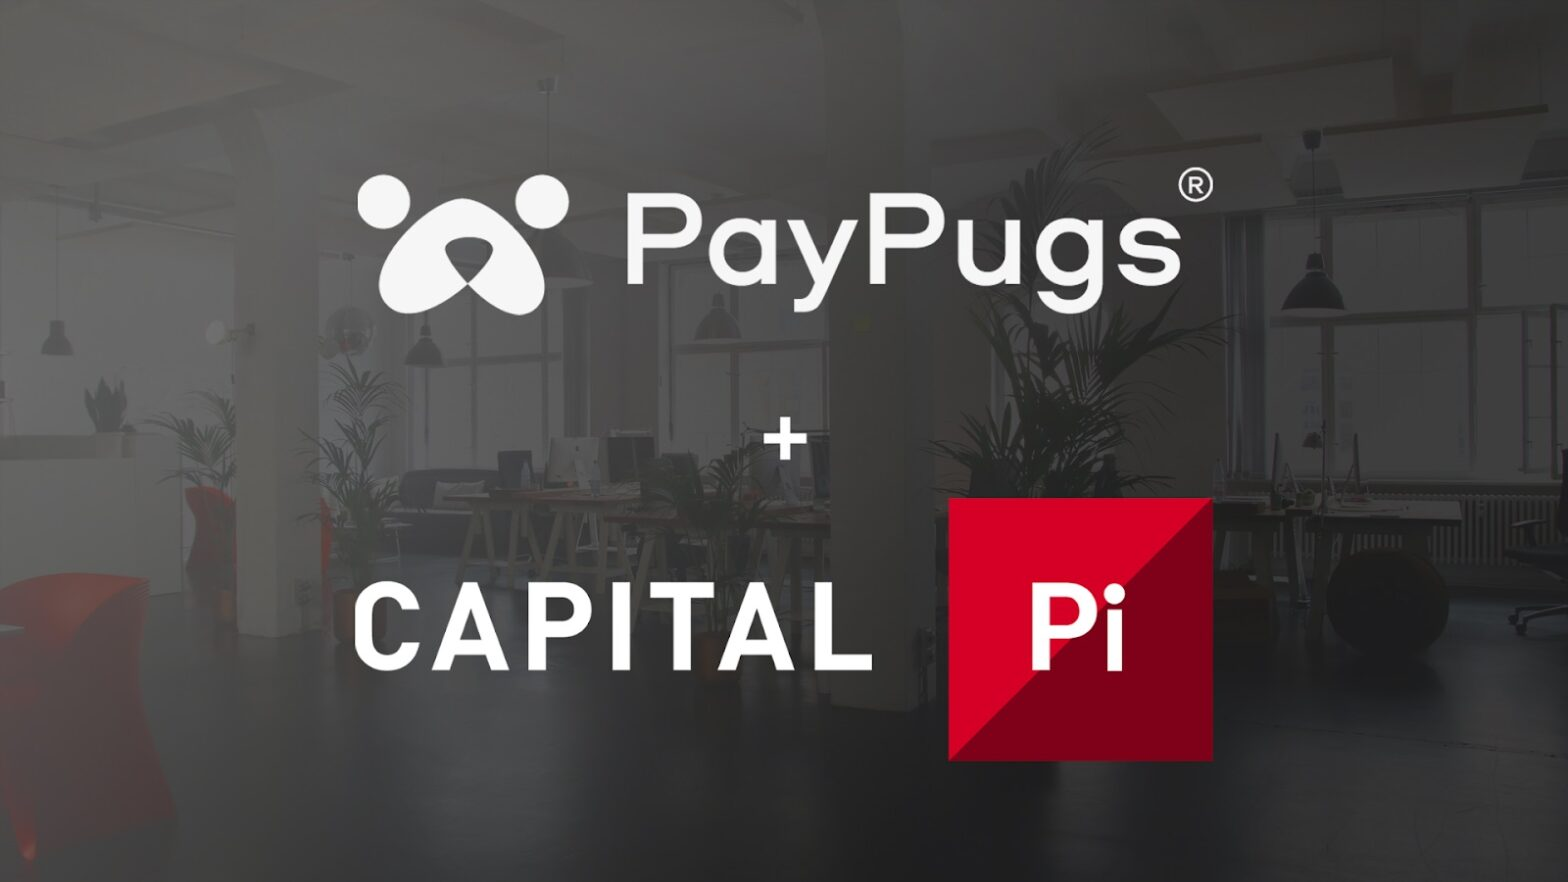 Paypugs Capital Llc Entered Into A Partnership Agreement With Capital PI BV HEADER